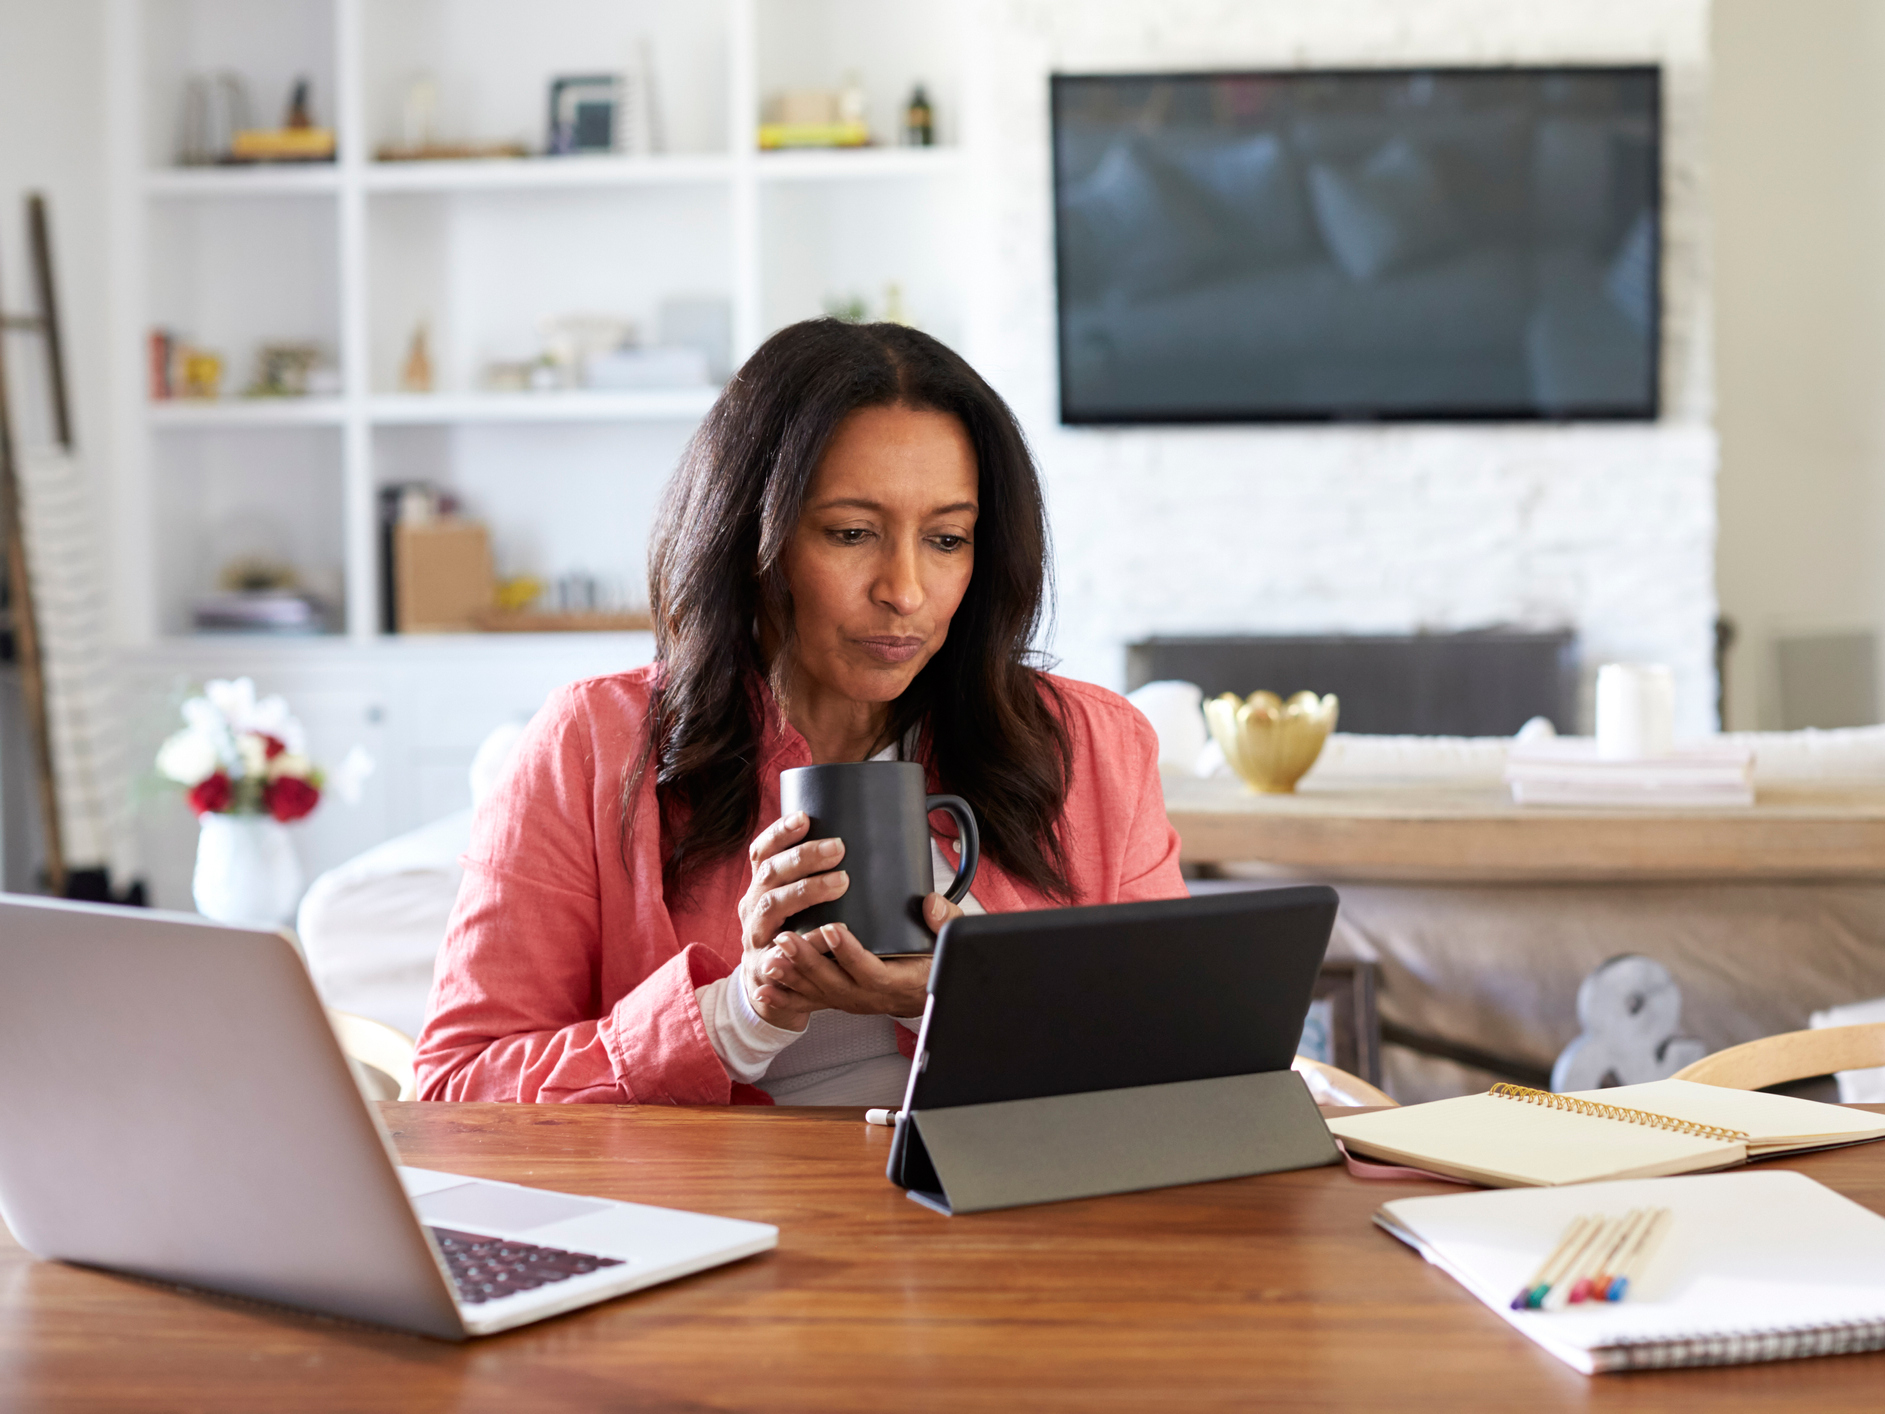 Is too much screen time making you age faster?